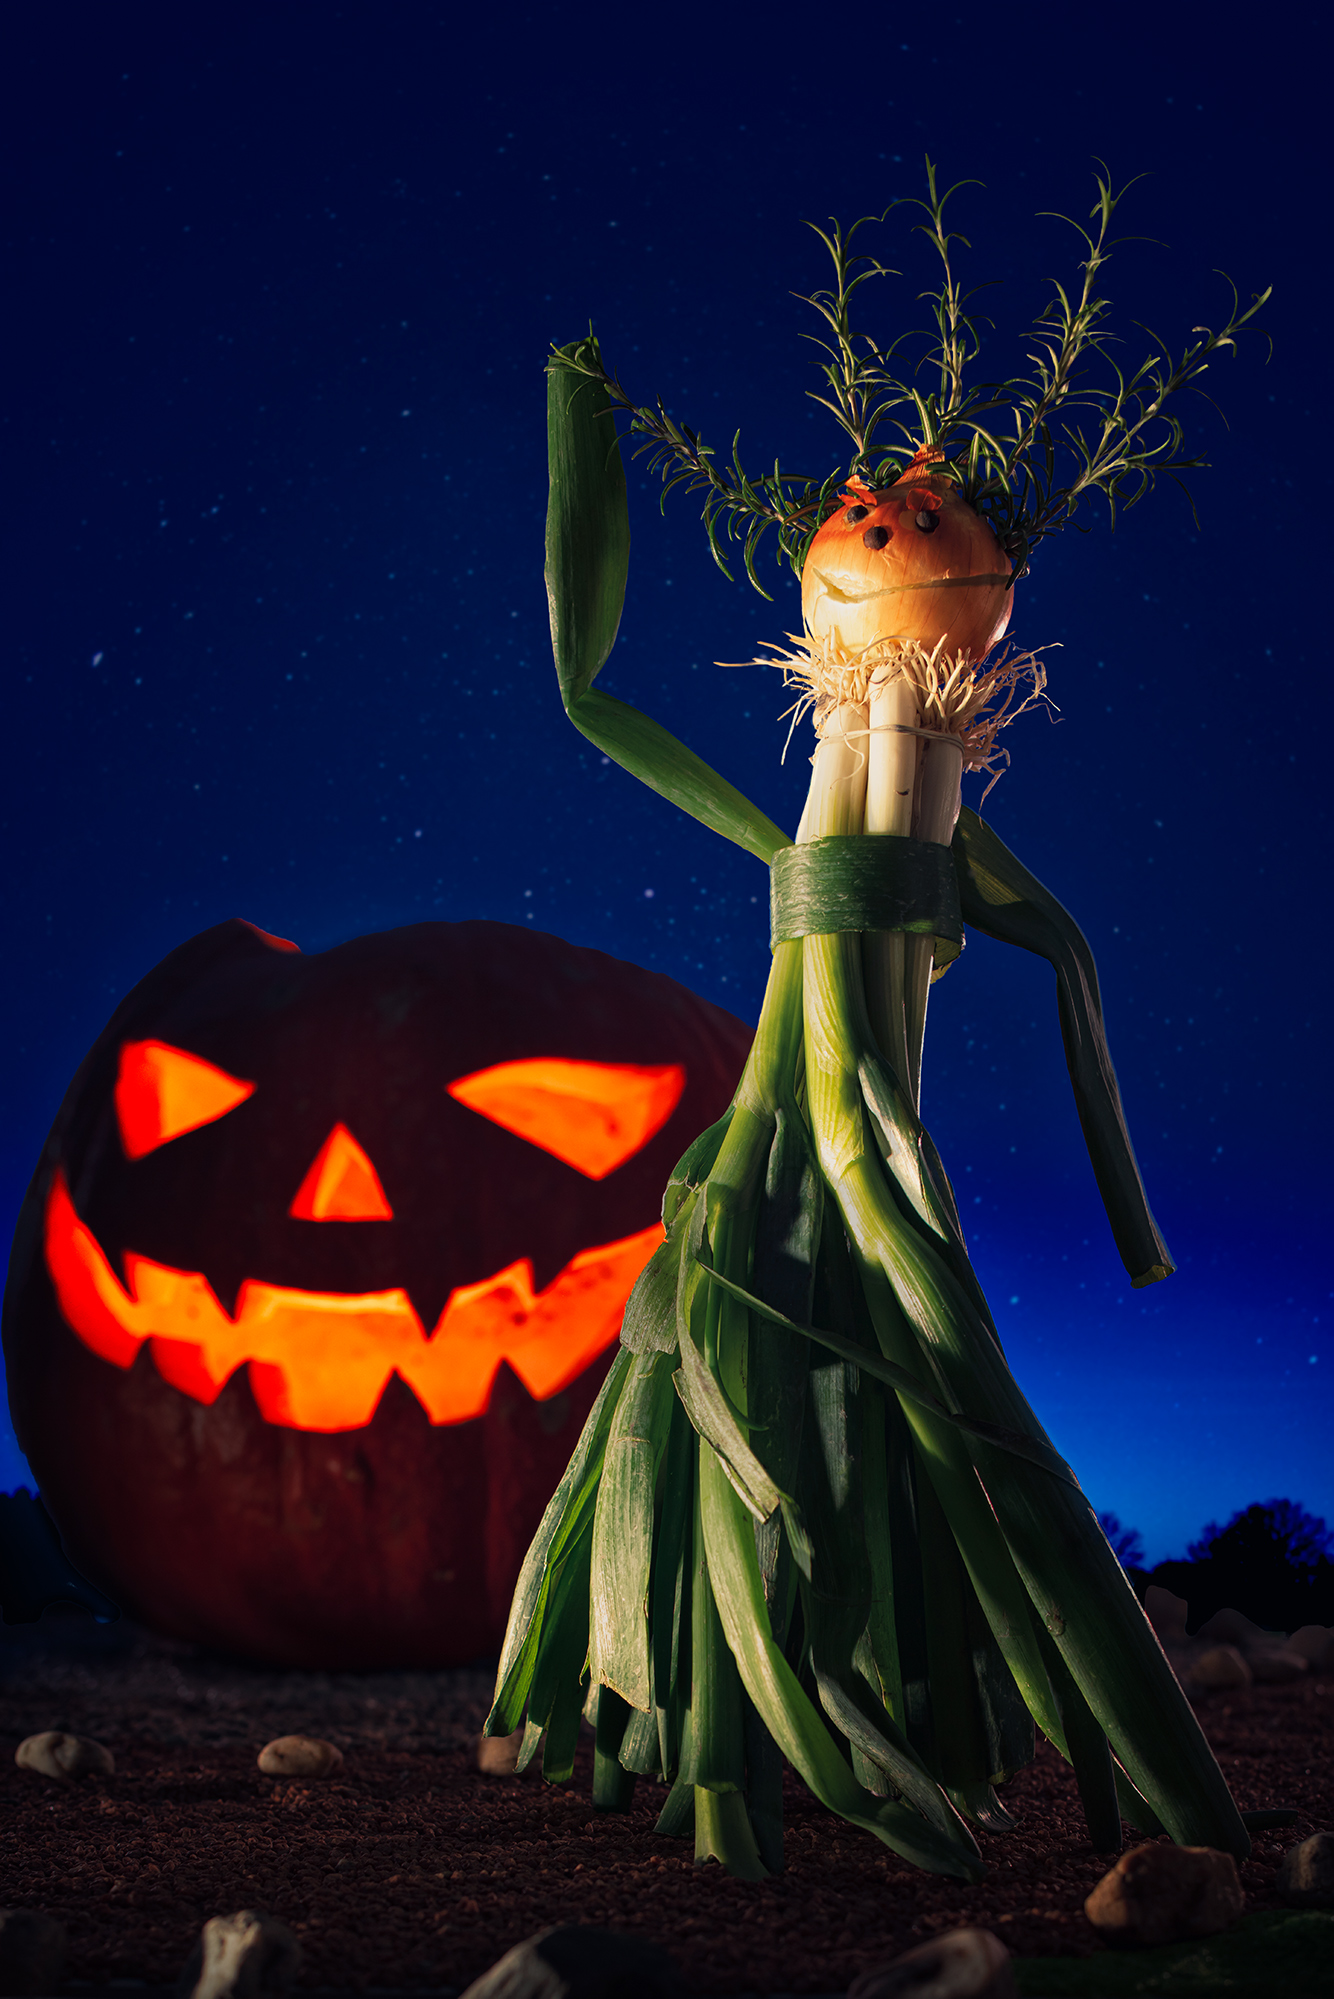 A figure made out of spring onion and yellow onion is shown in front of a lit pumpkin with carved out face.